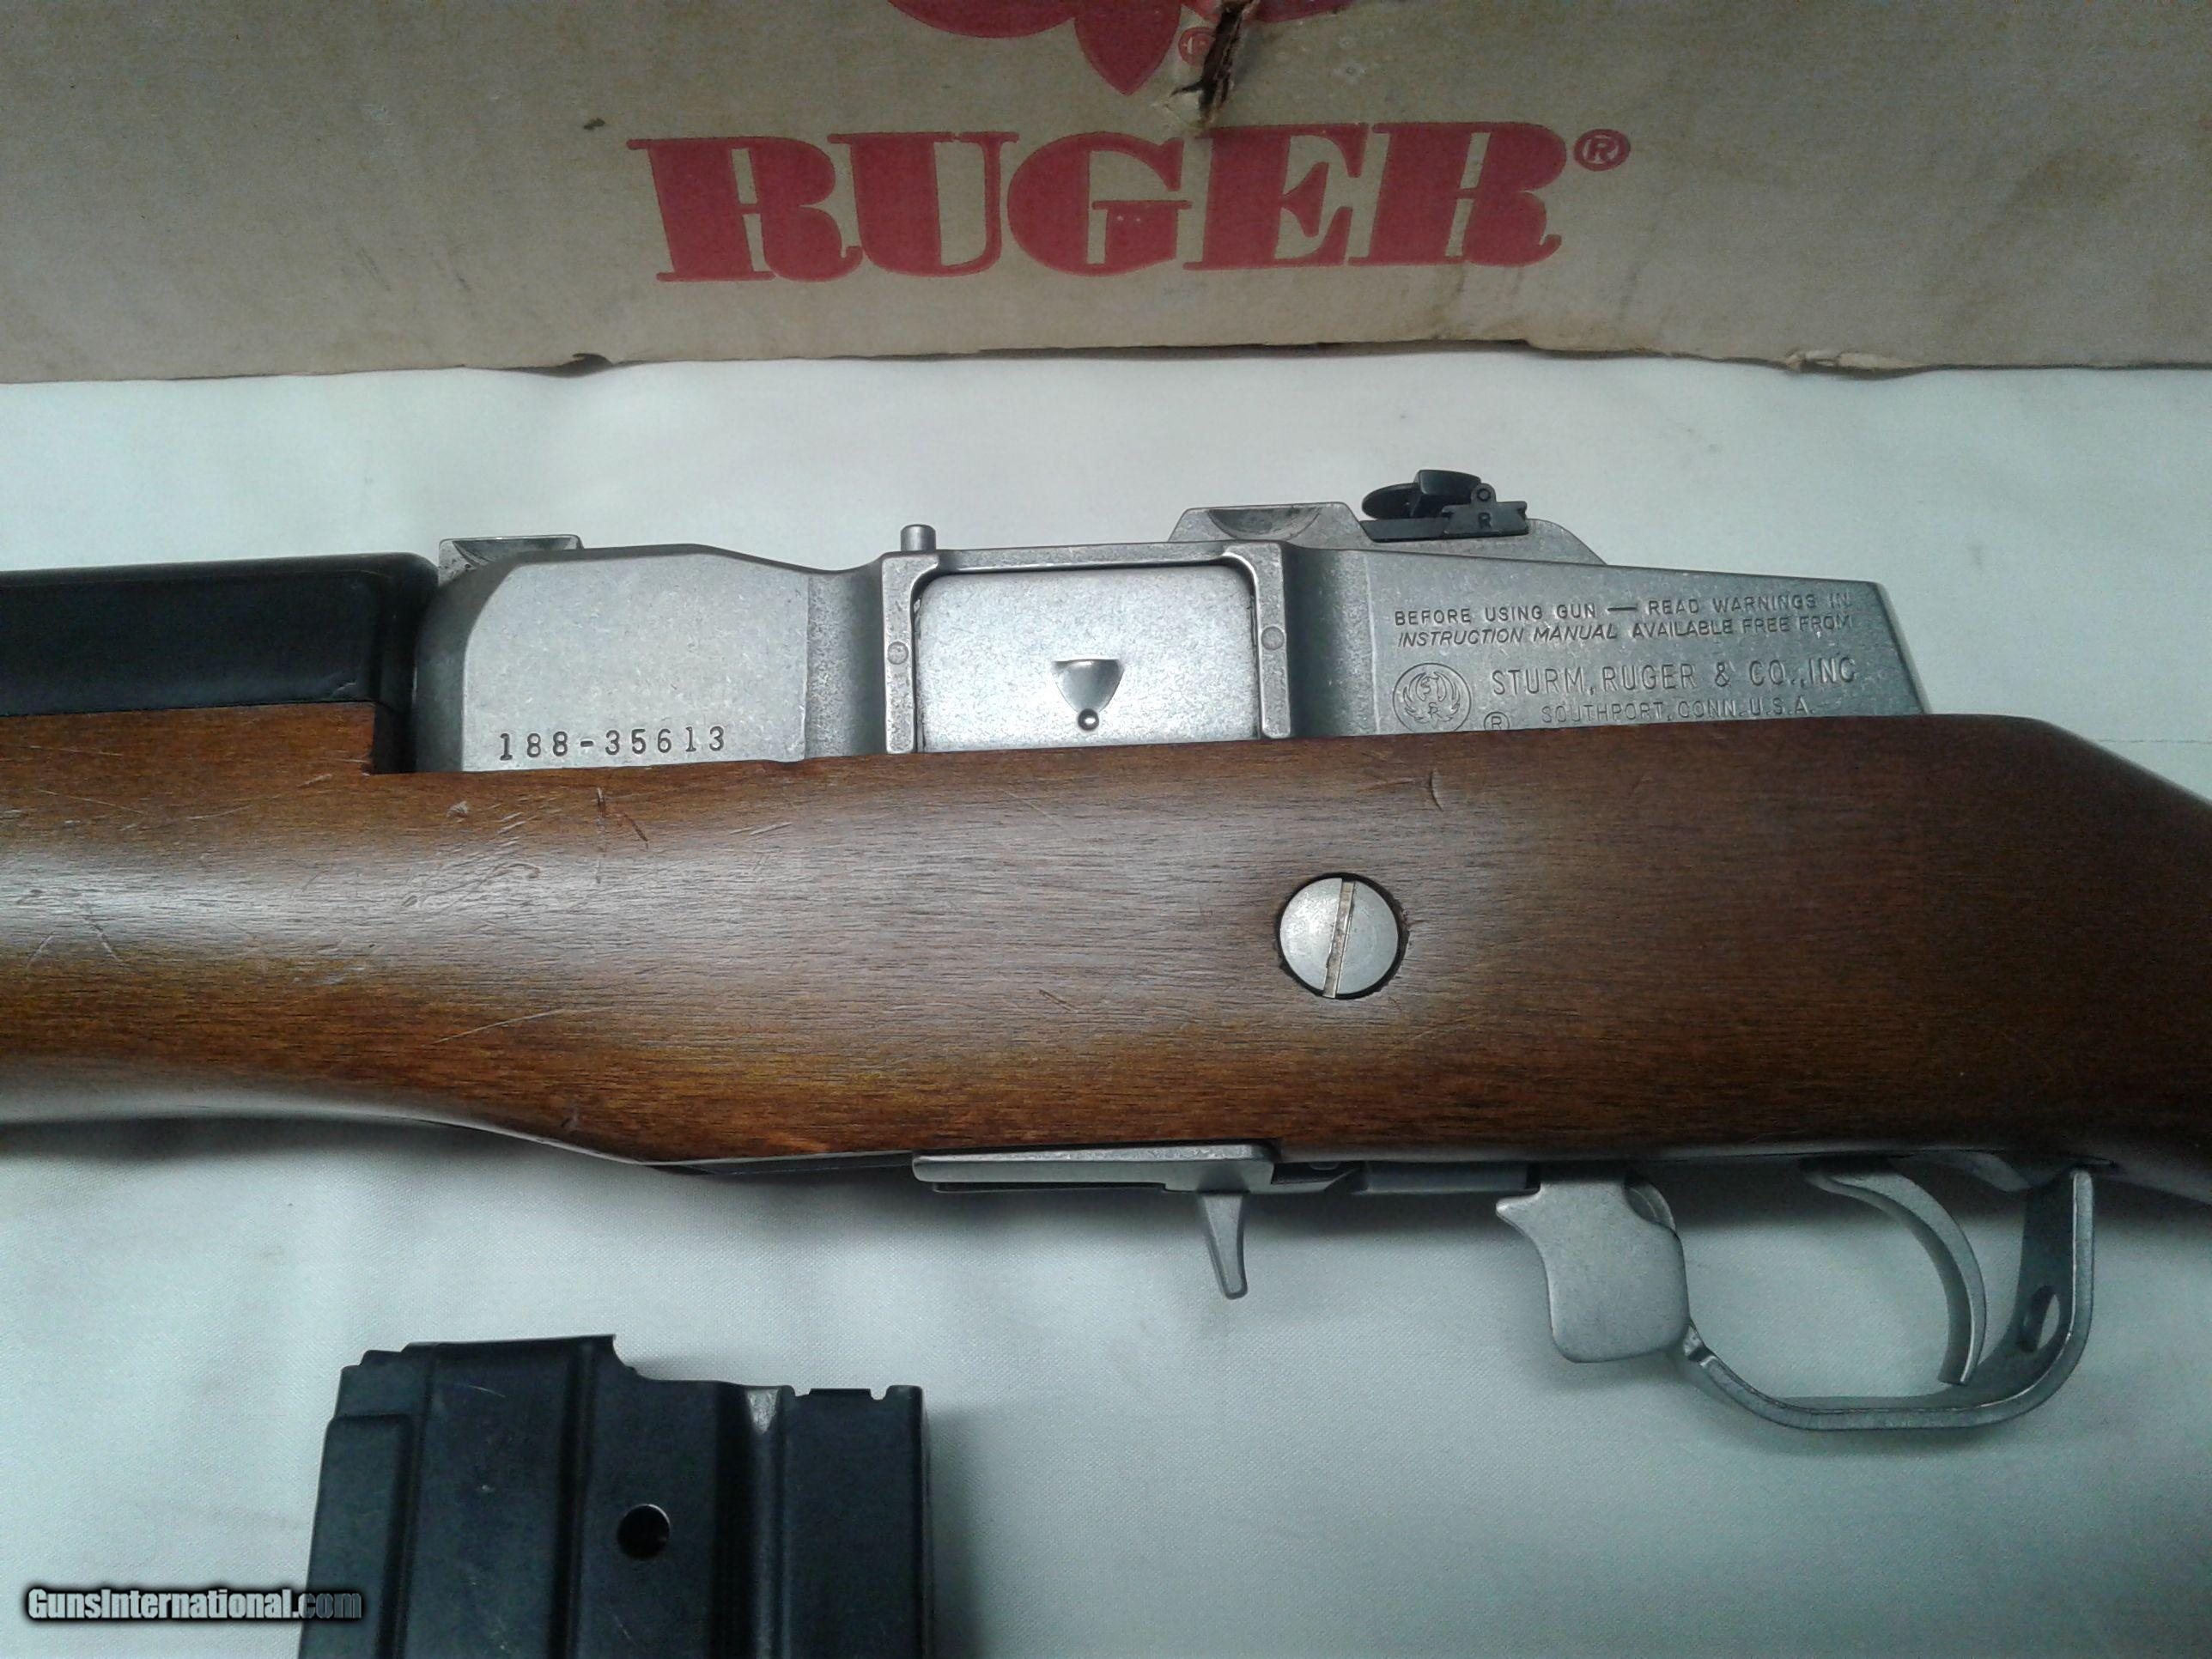 Ruger Mini-14 Ranch carbine stainless barrel wood stock with